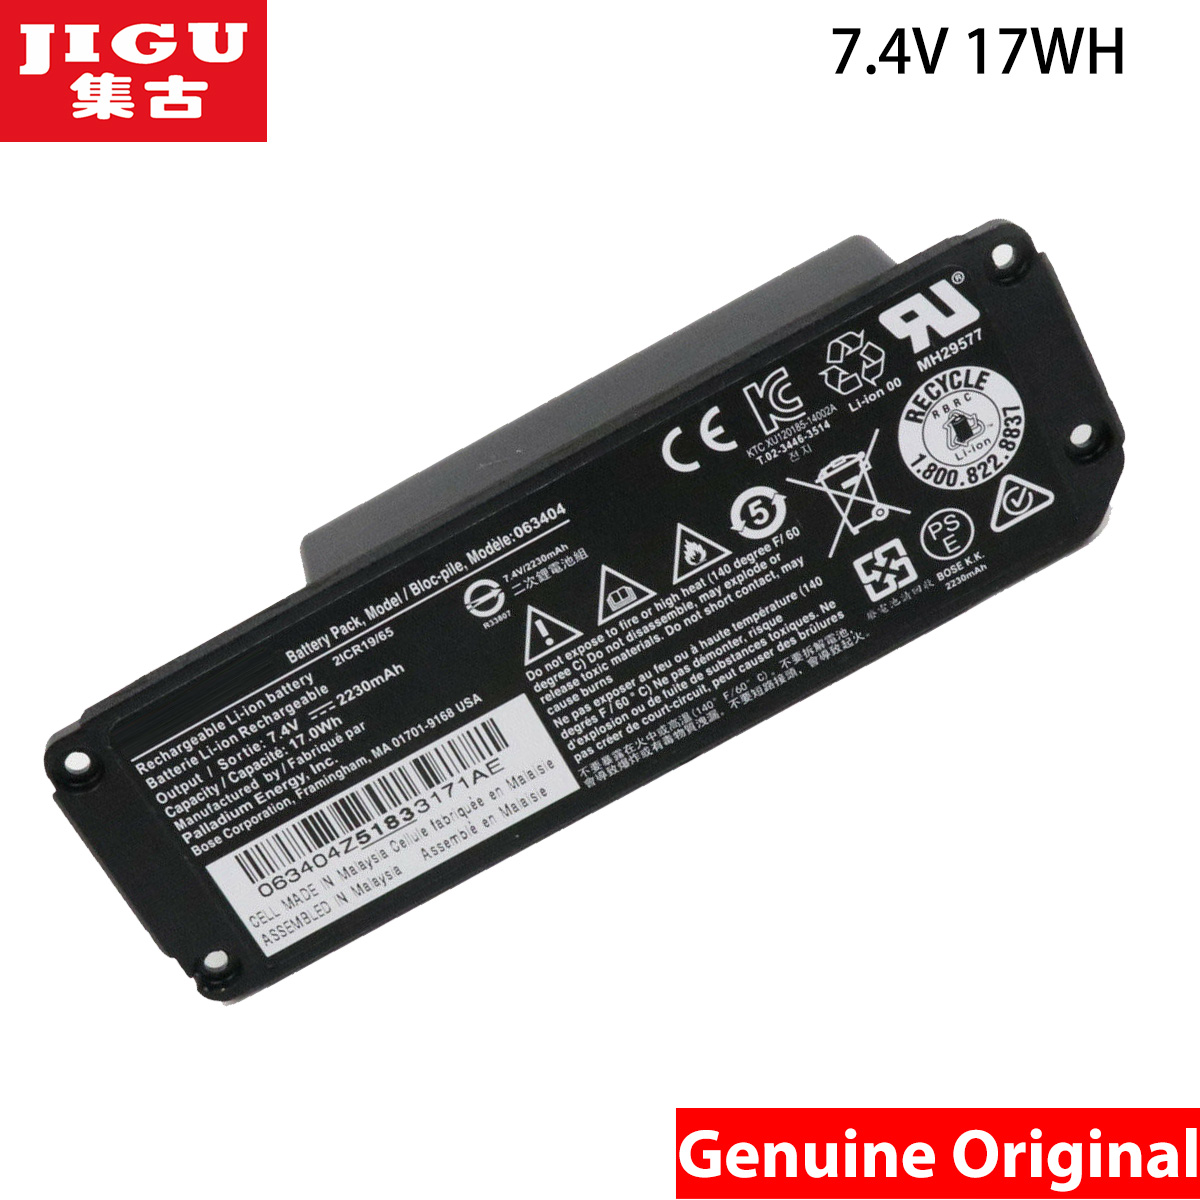 JIGU New Original Battery 061384 061385 061386 063404 063287 For Bose SoundLink Mini 1 Bluetooth Mobile Speaker